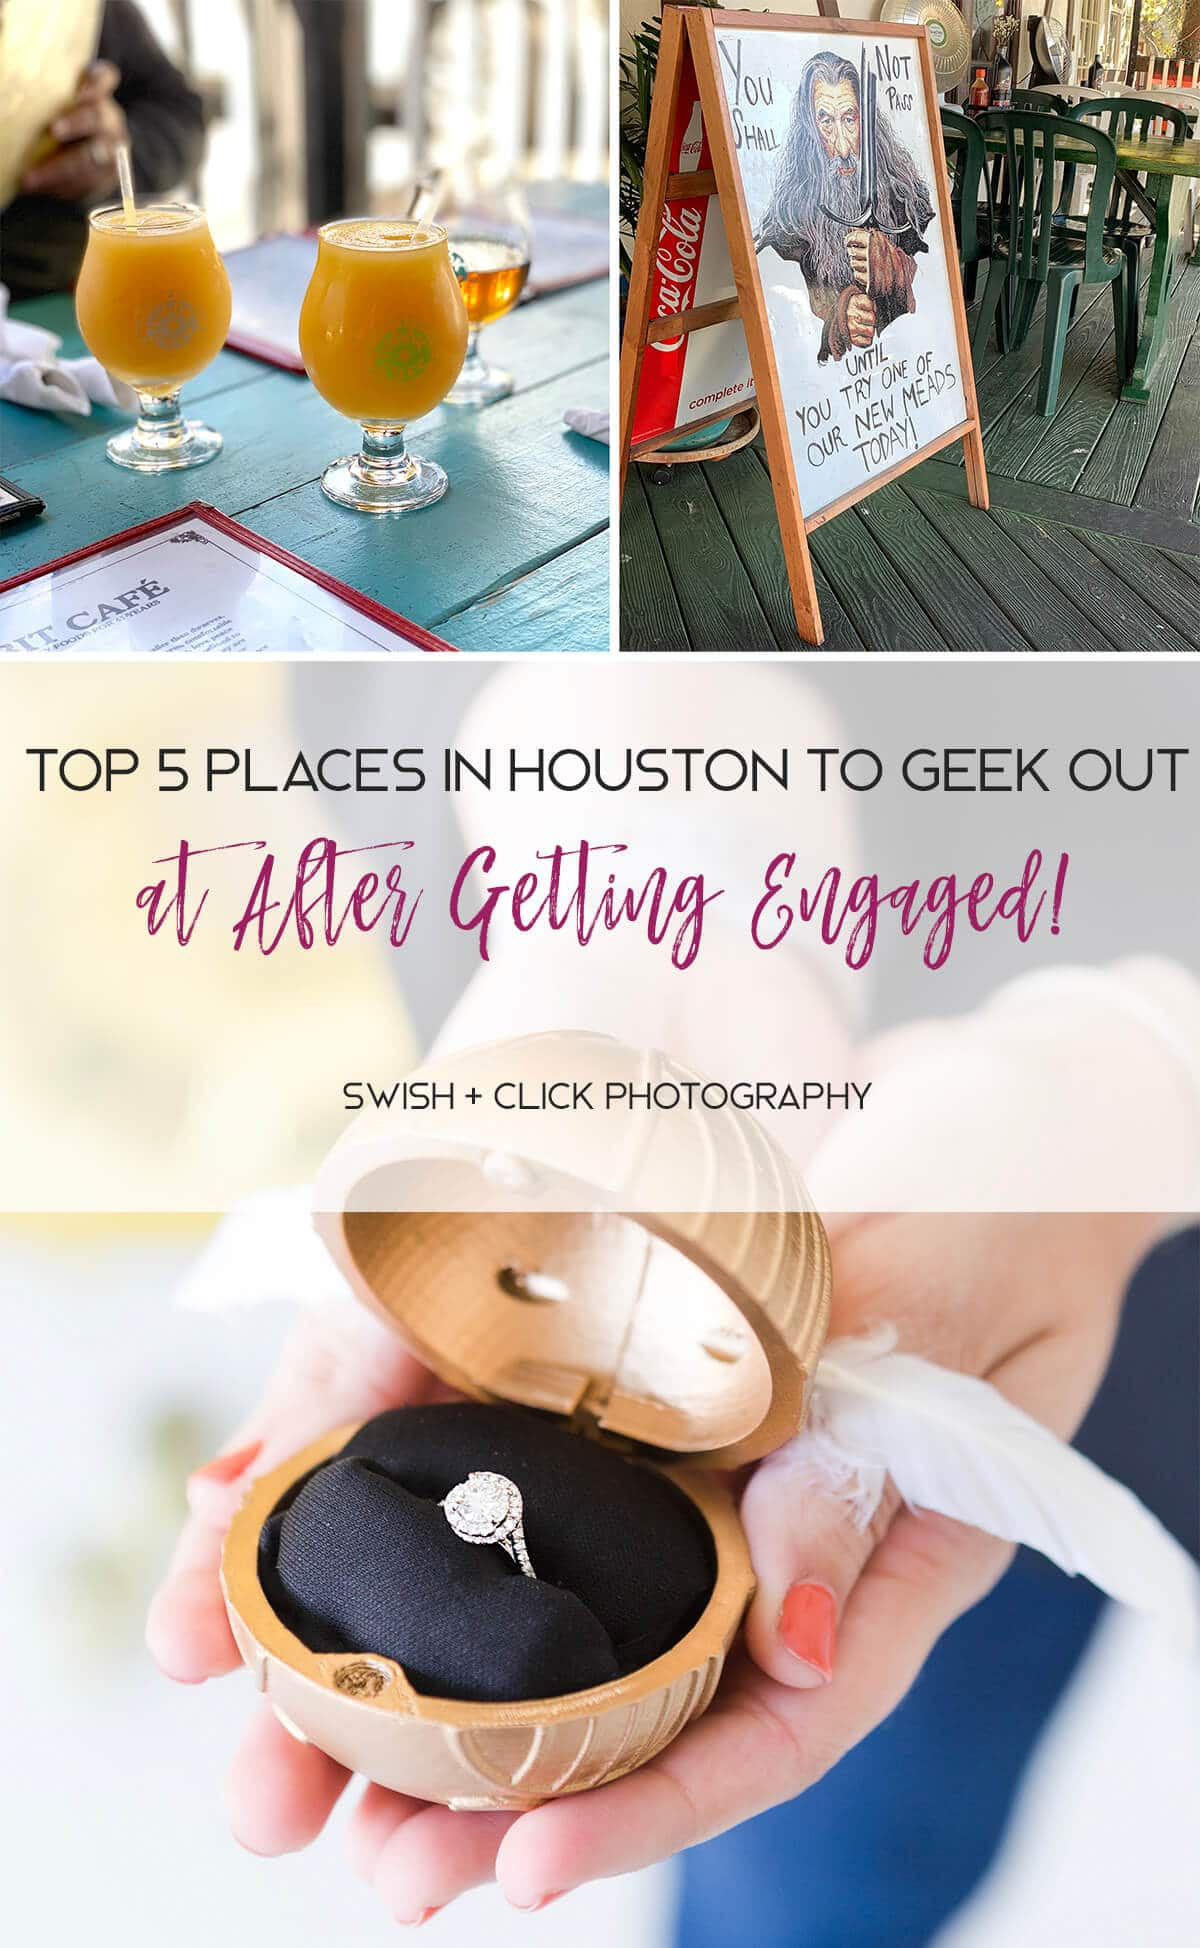 Top 5 Places in Houston to Geek out at Over your Engagement!